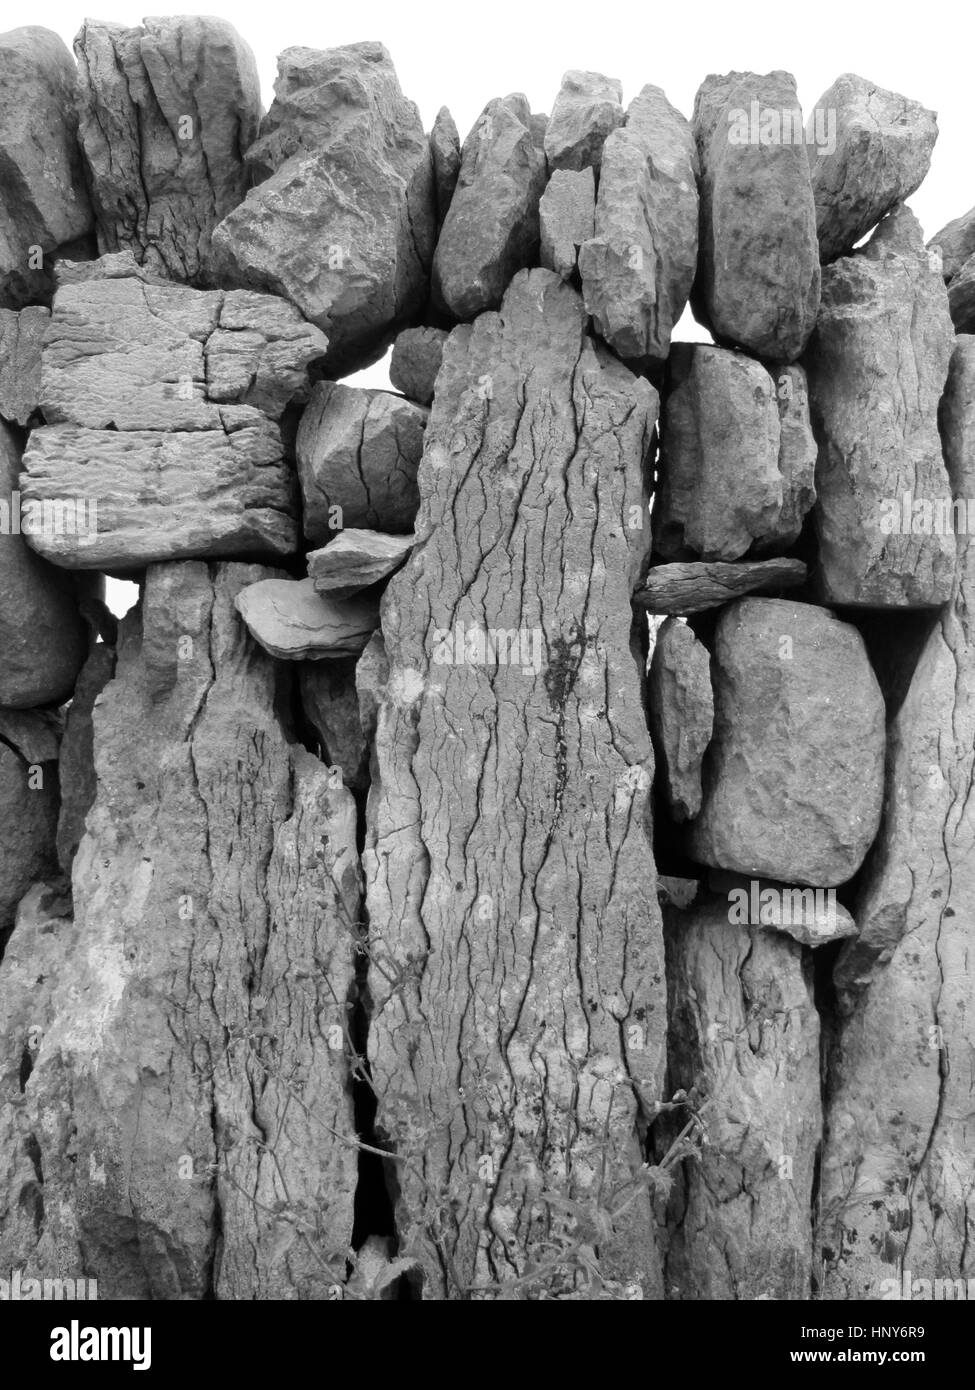 A dry stone wall on Inis Oirr - Inisheer in Irish - Aran Islands - Co Galway - Ireland - Stock Image